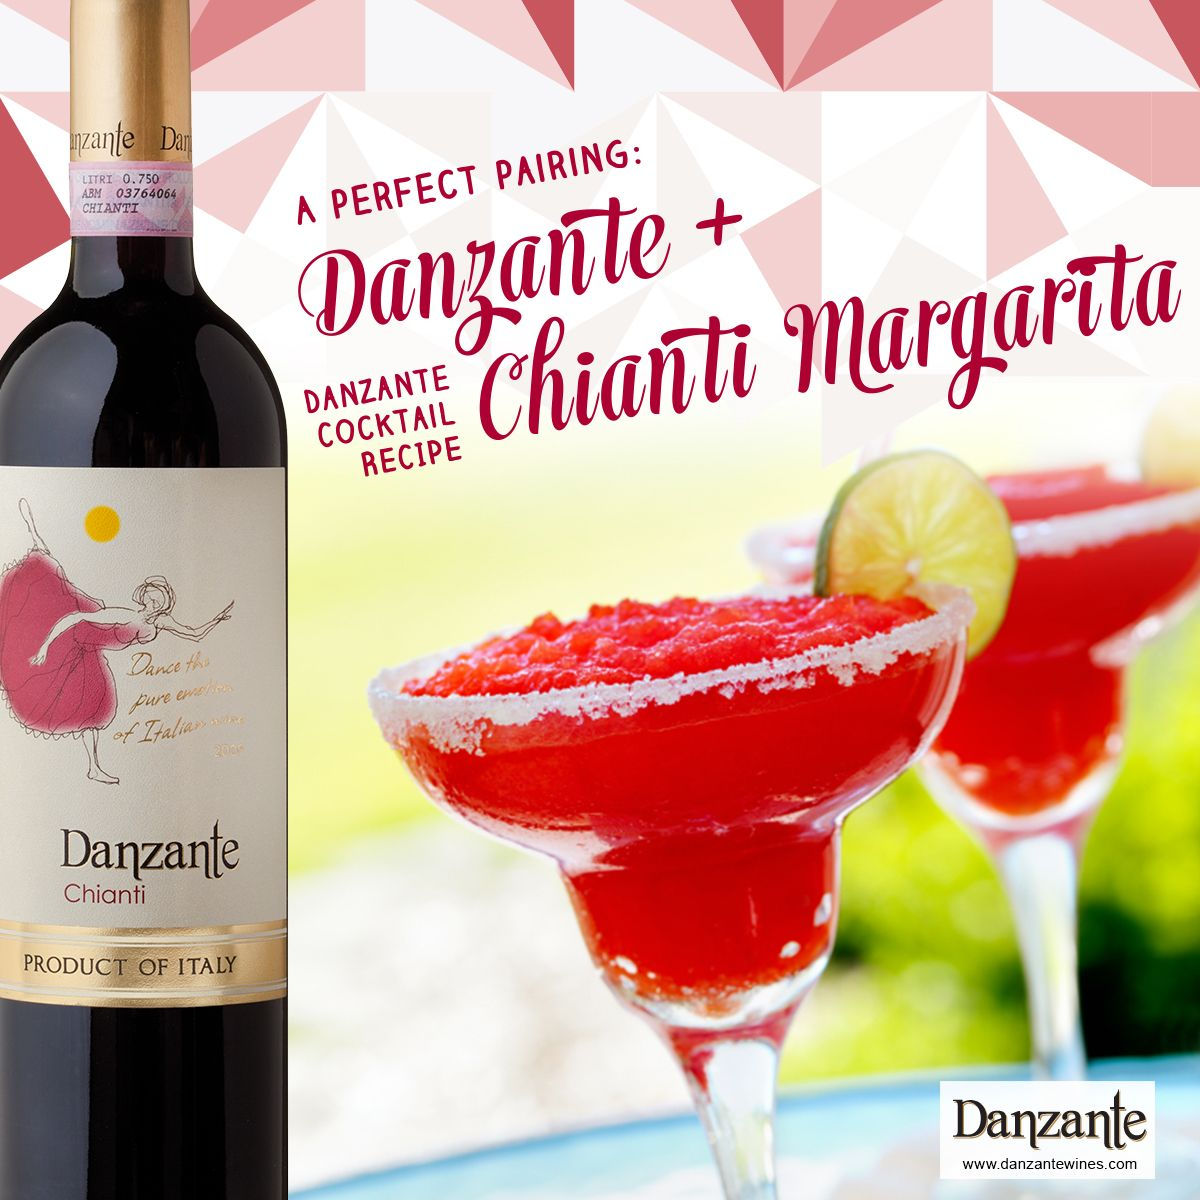 Danzante Chianti Margarita Recipe Wine Cocktail Recipes Margarita Margarita Cocktail